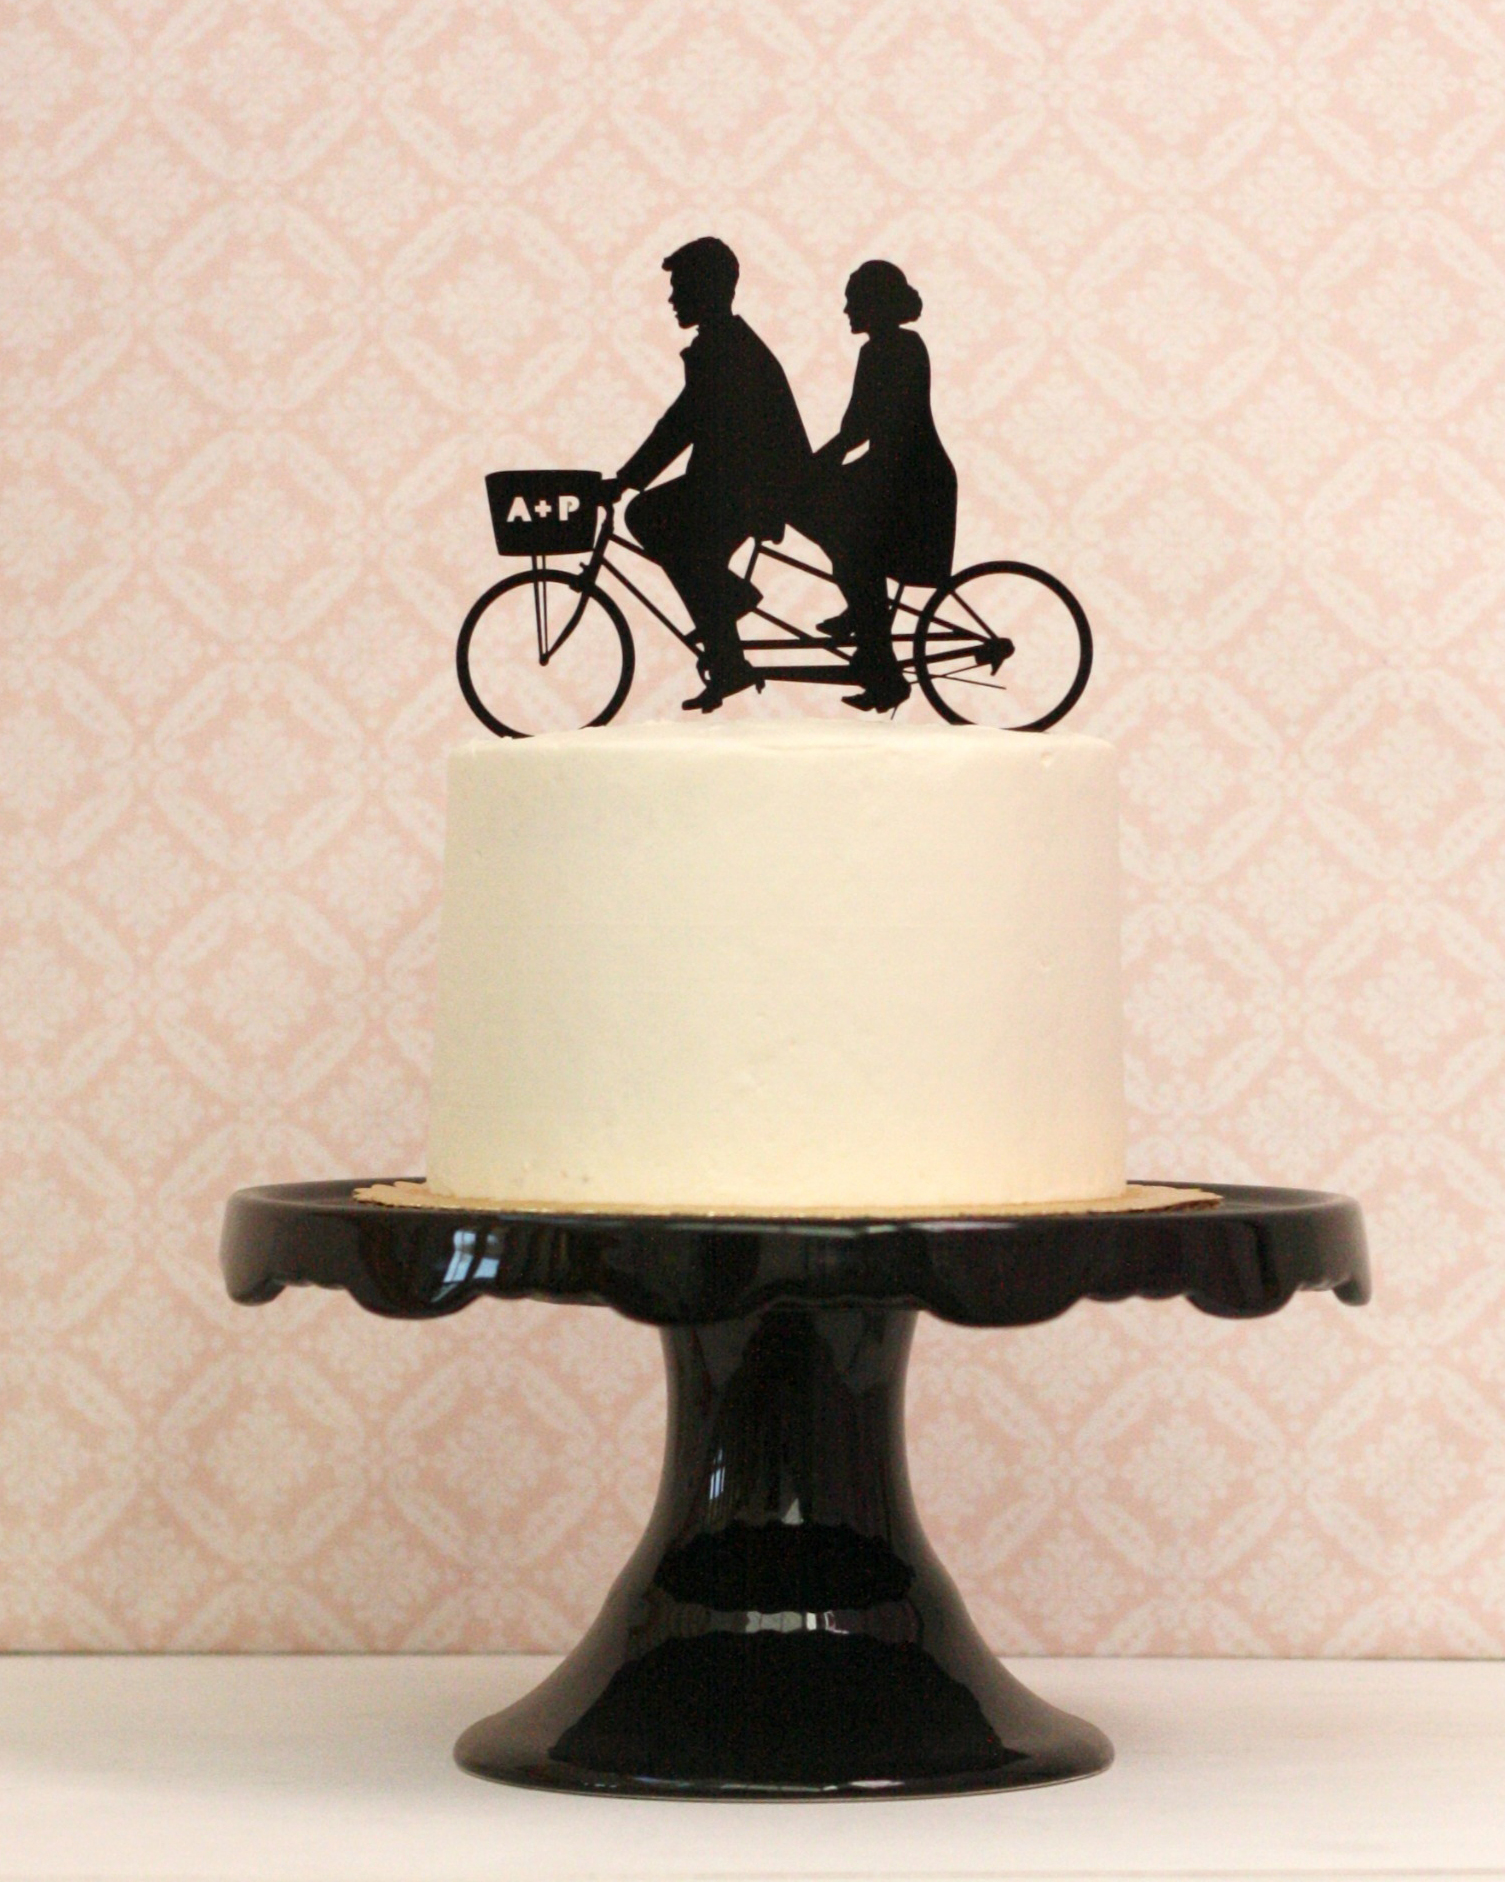 cake-toppers-simply-silhouettes-tandem-bike-0814.jpg